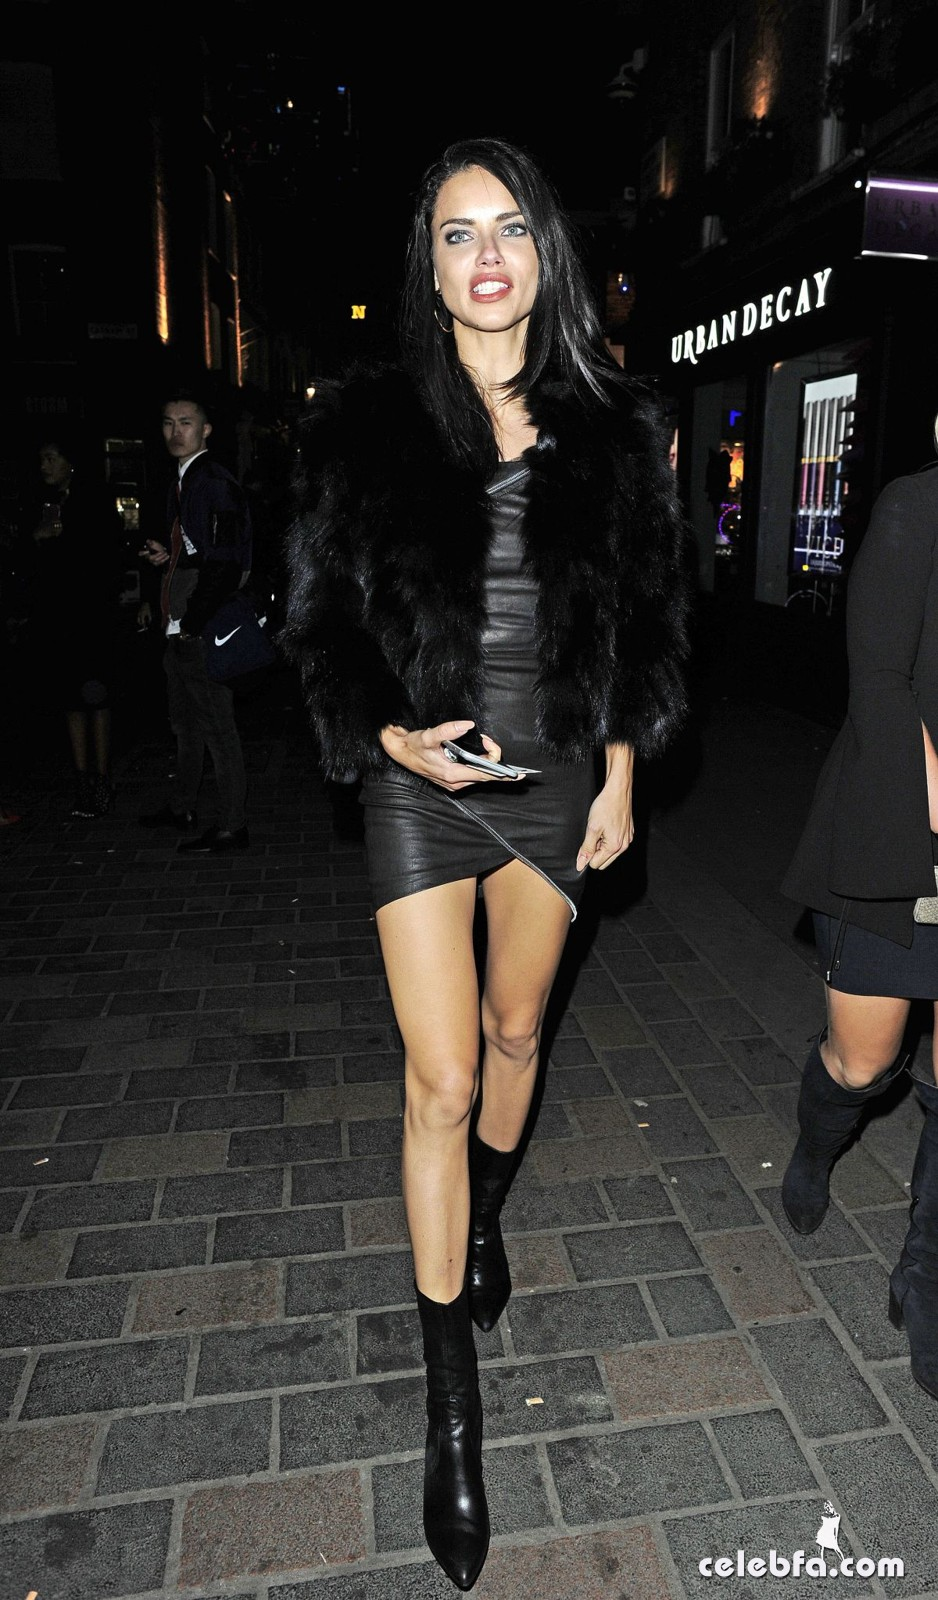 adriana-lima-night-out-in-london-3